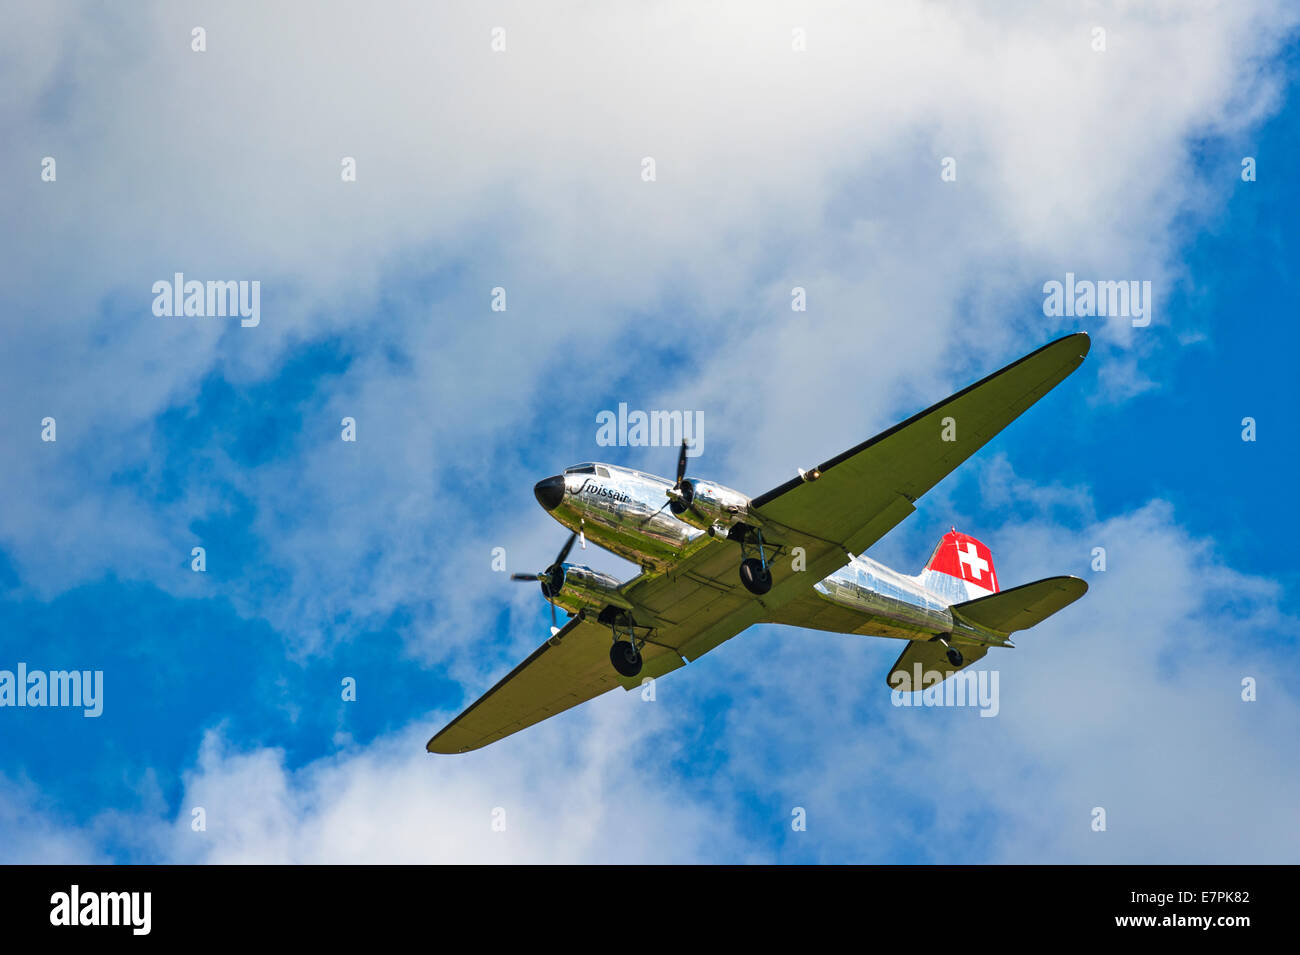 A Douglas DC-3 (Dakota) of Swissair, coming in to land Stock Photo